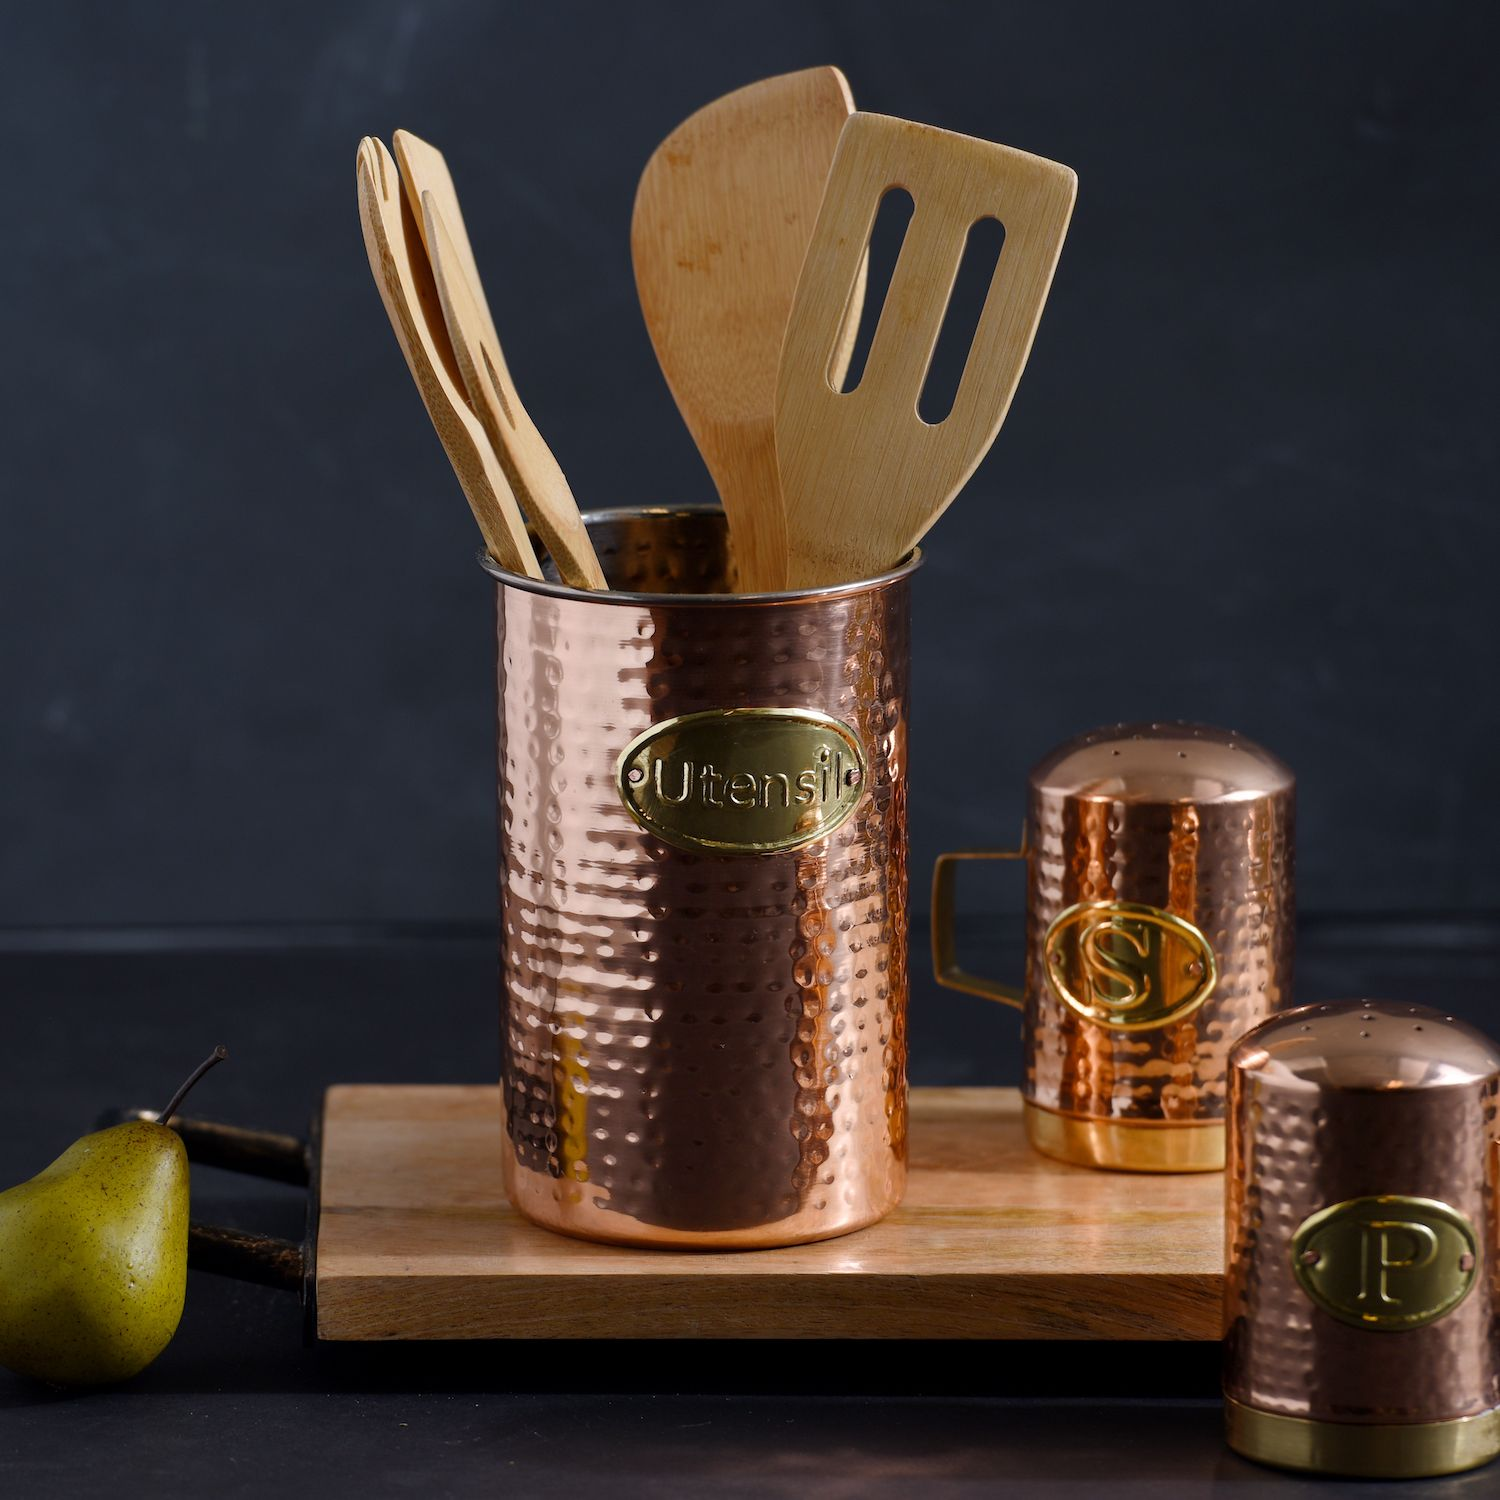 Copper Kitchen Utensil Holder Recessed Lighting For Make Sure You Have Everything Need To Host The